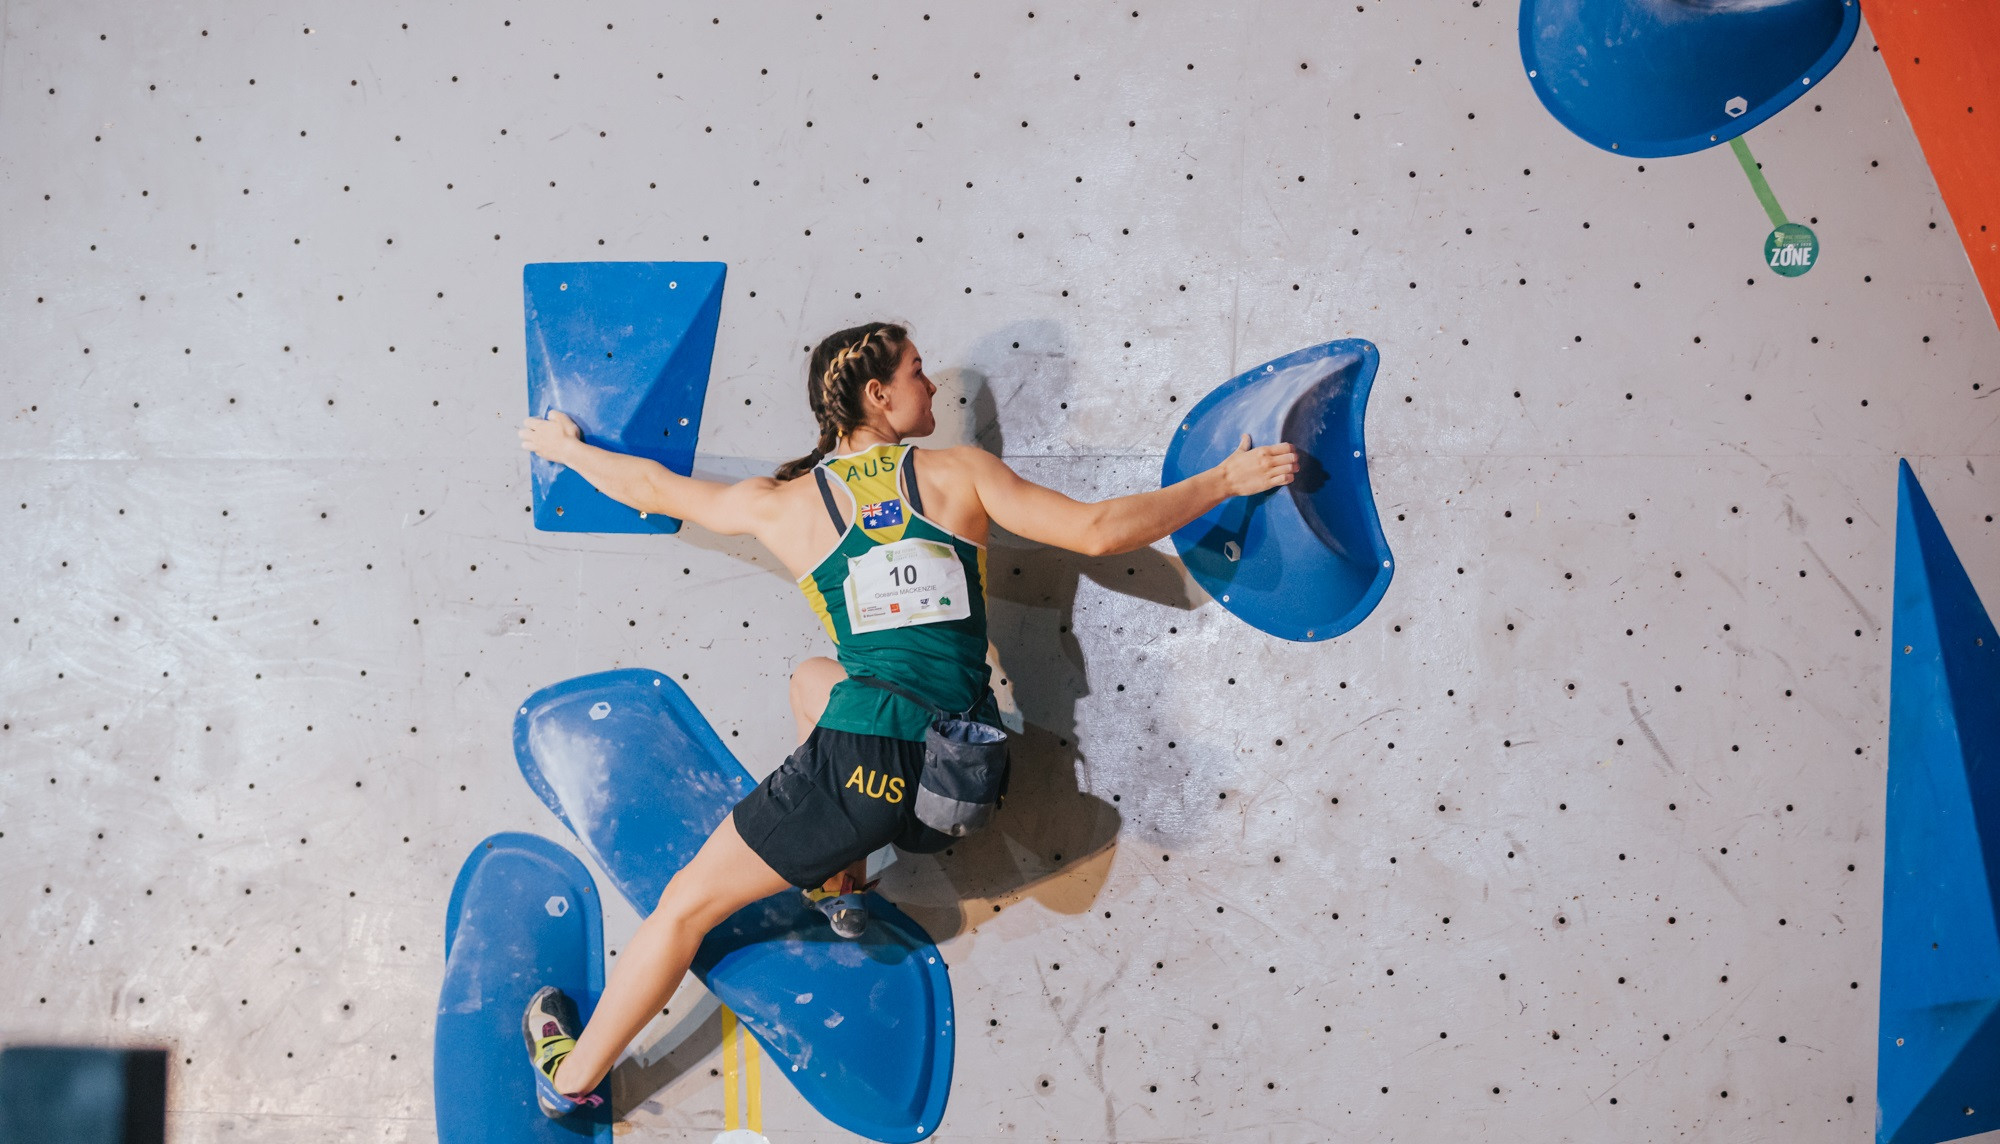 O'Halloran and MacKenzie earn Tokyo 2020 places at IFSC Oceania Championships